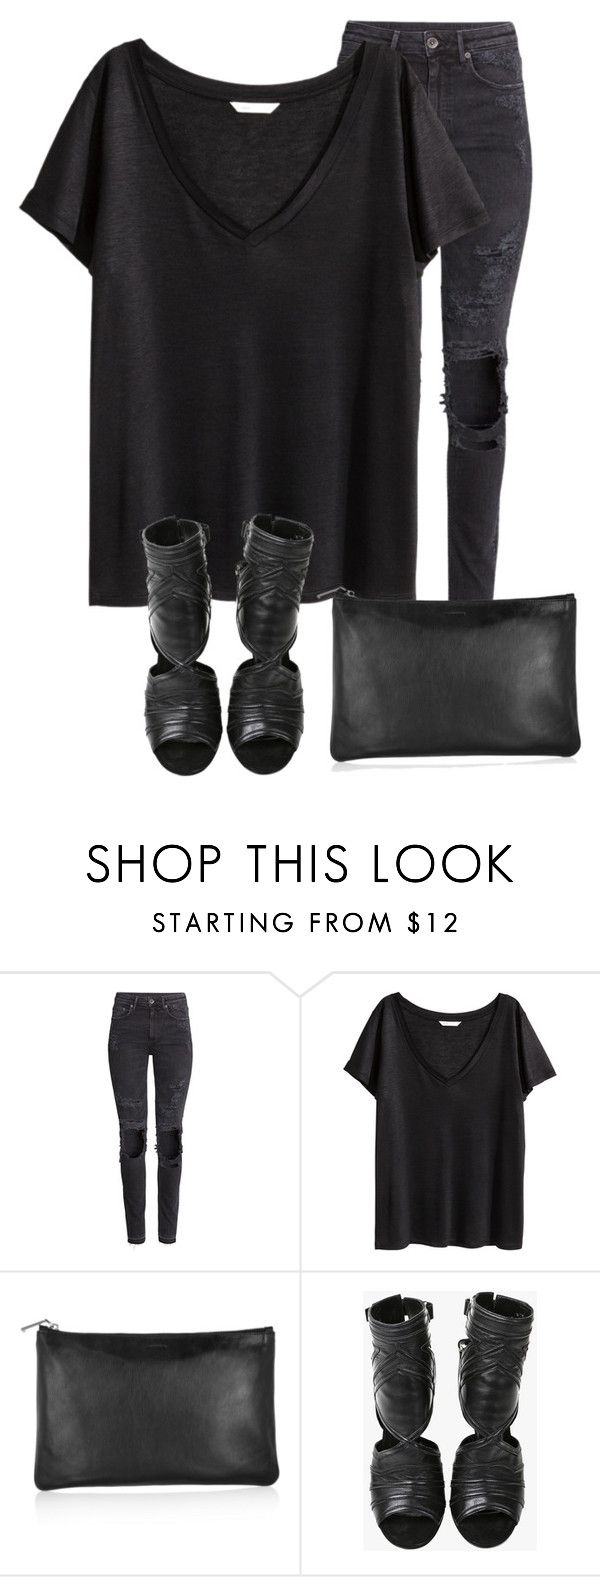 """""""Untitled #247"""" by antonela-475 ❤ liked on Polyvore featuring mode, H&M, Jil Sander et Balmain"""